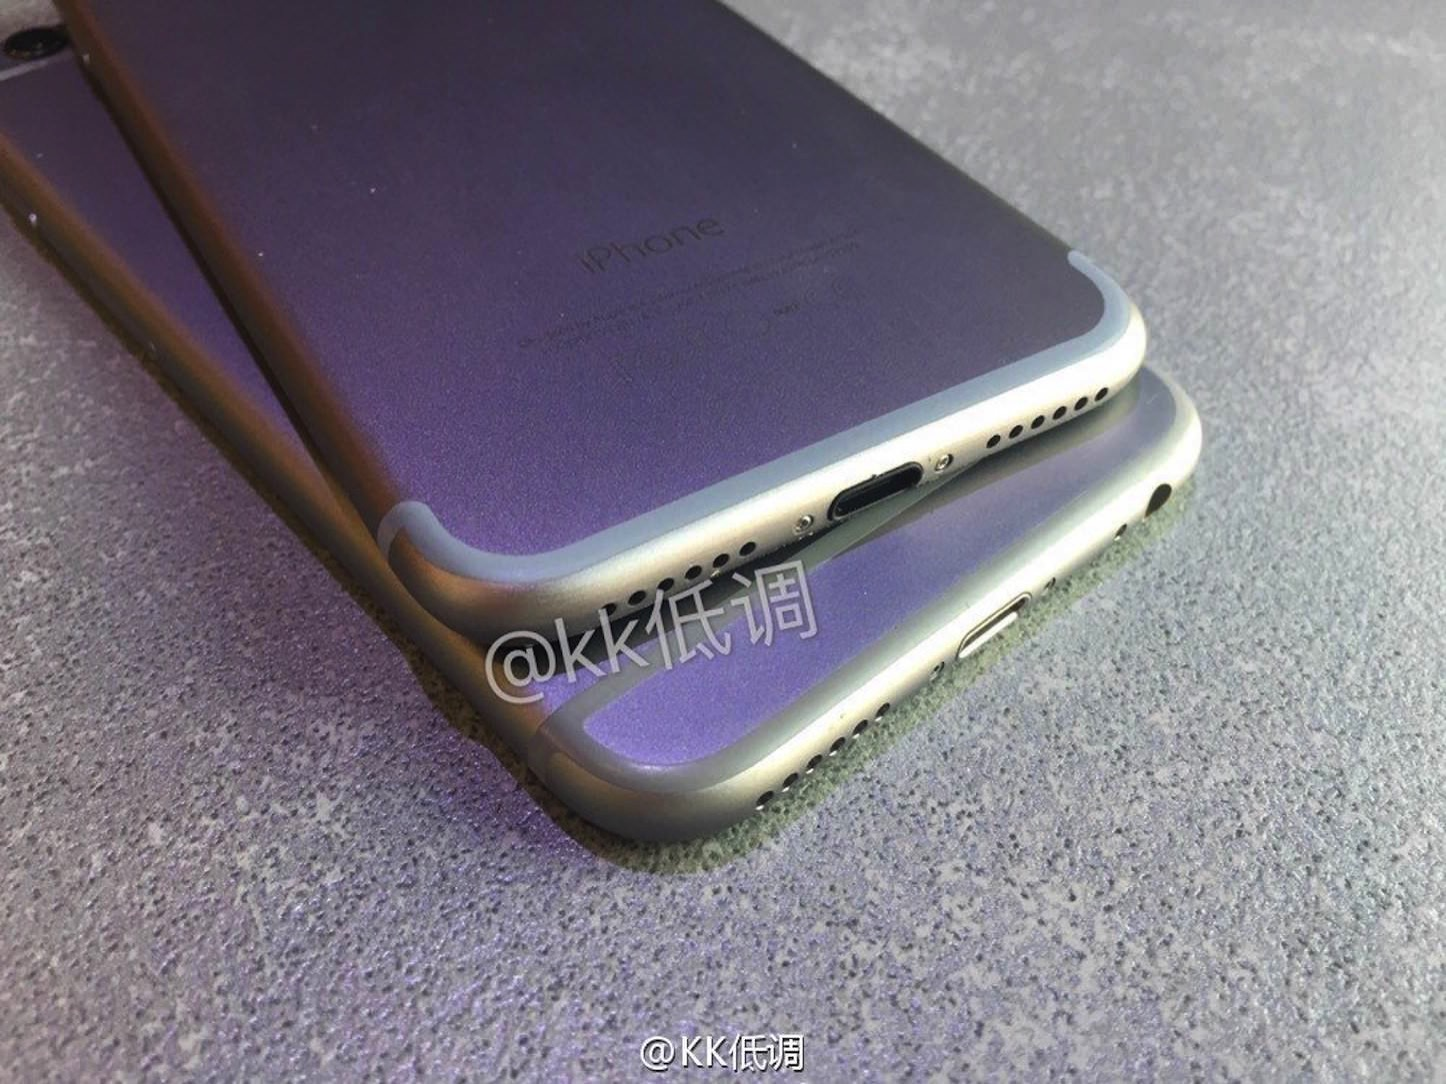 New Photos of iPhone7 and iPhone6s